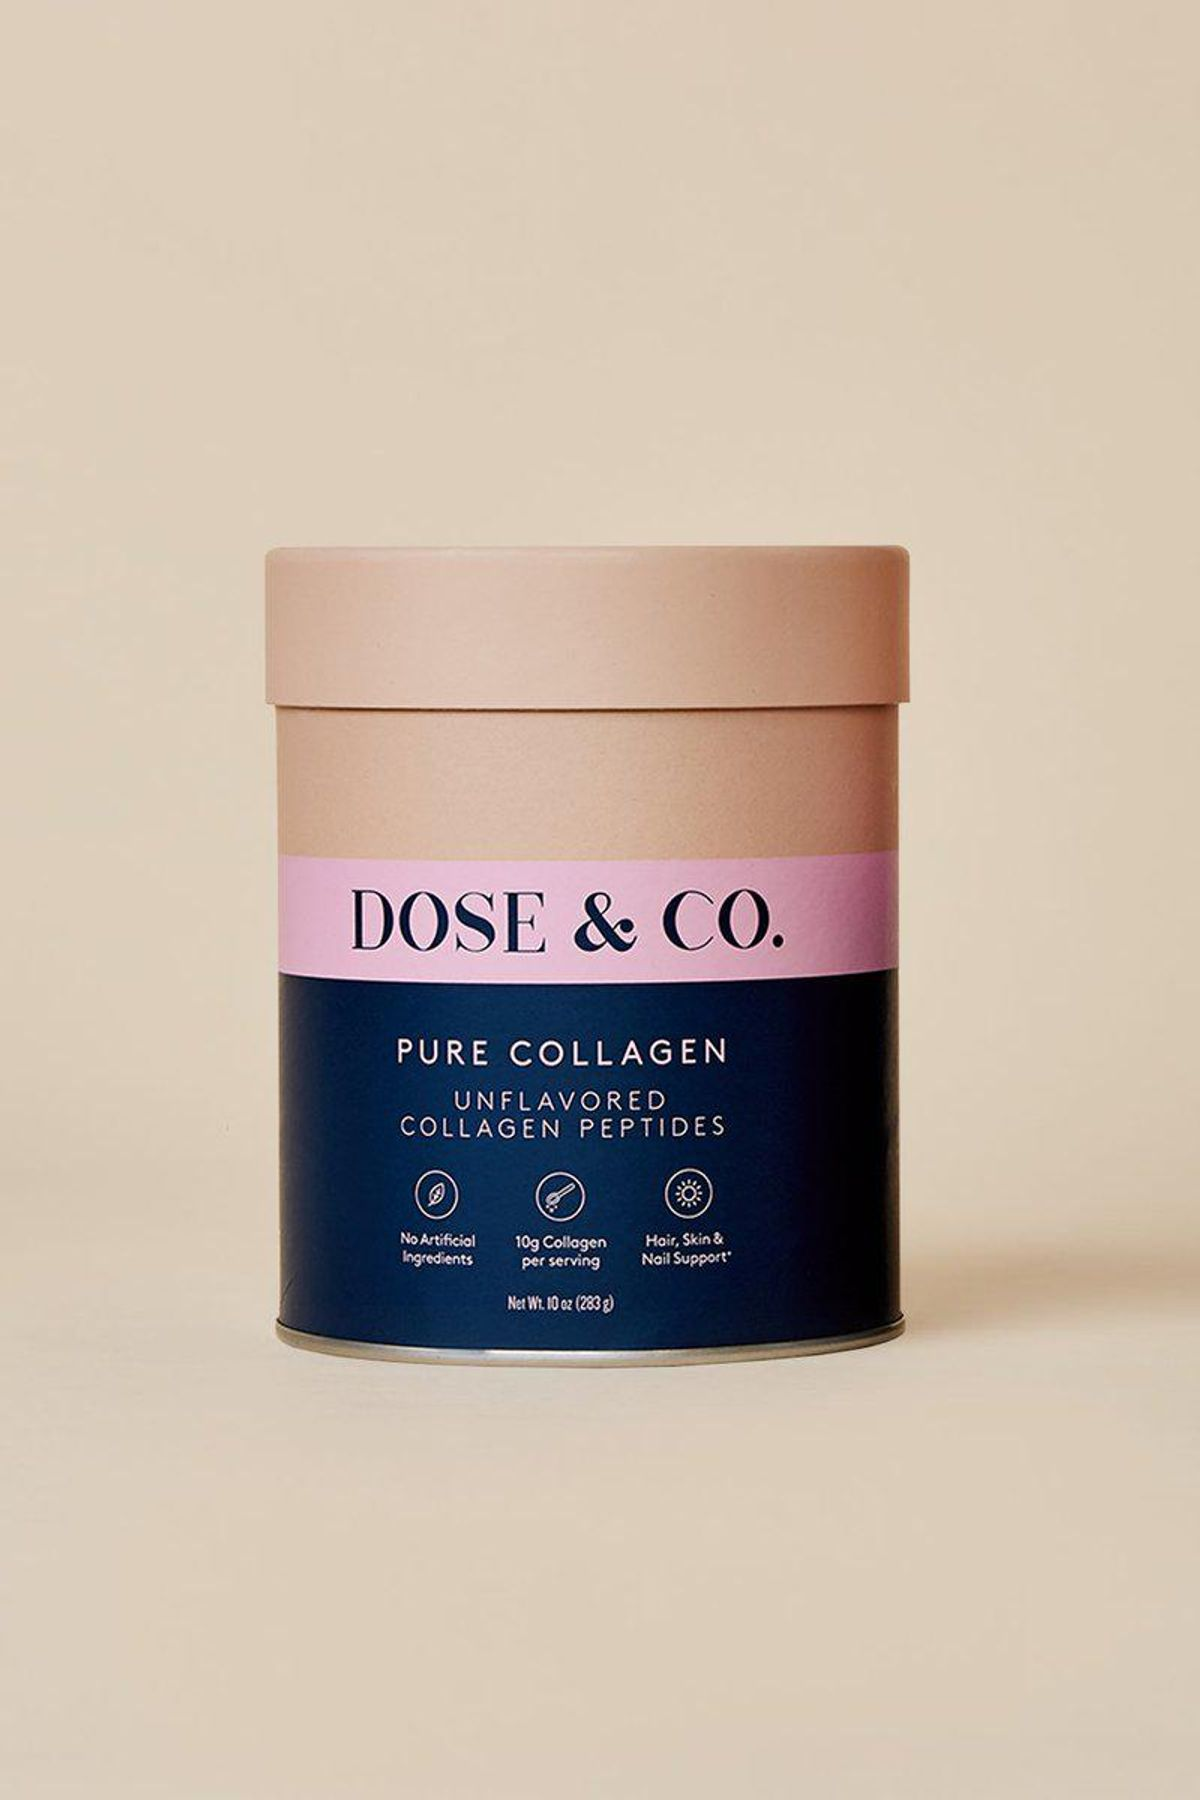 dose and co unflavored collagen peptides